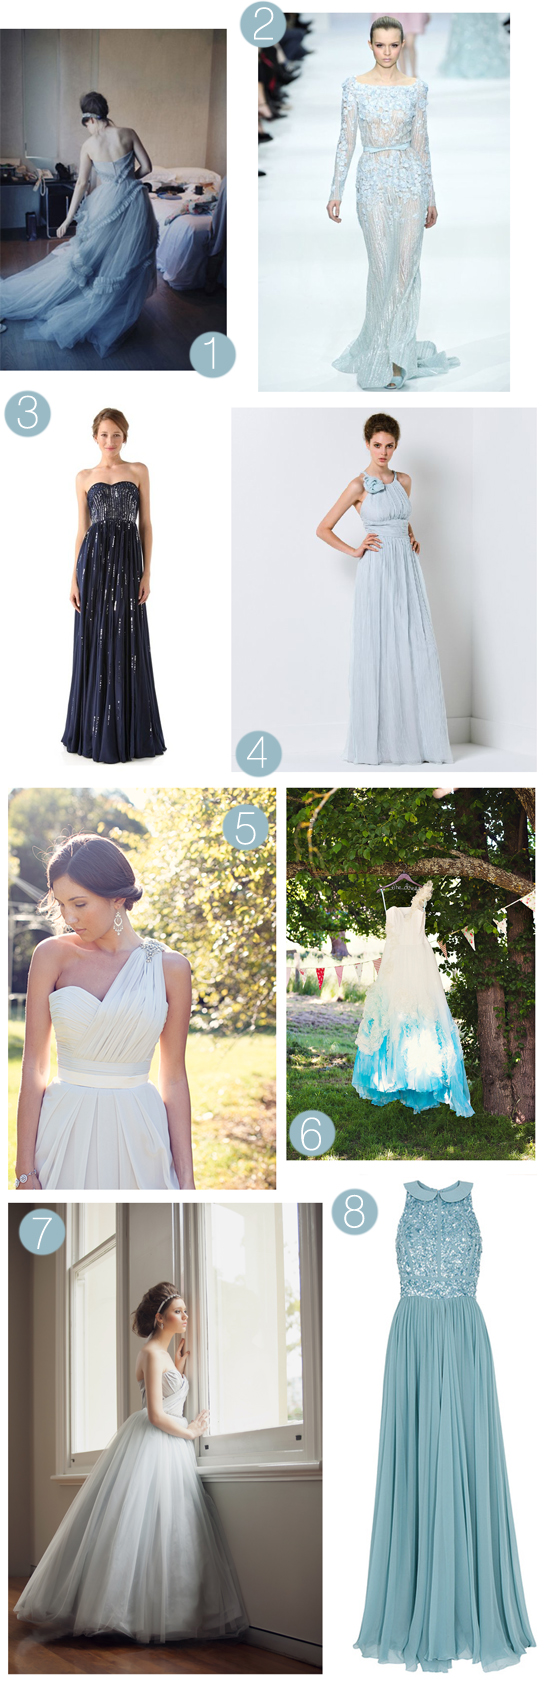 blue wedding gowns Blue Wedding Gown Inspiration